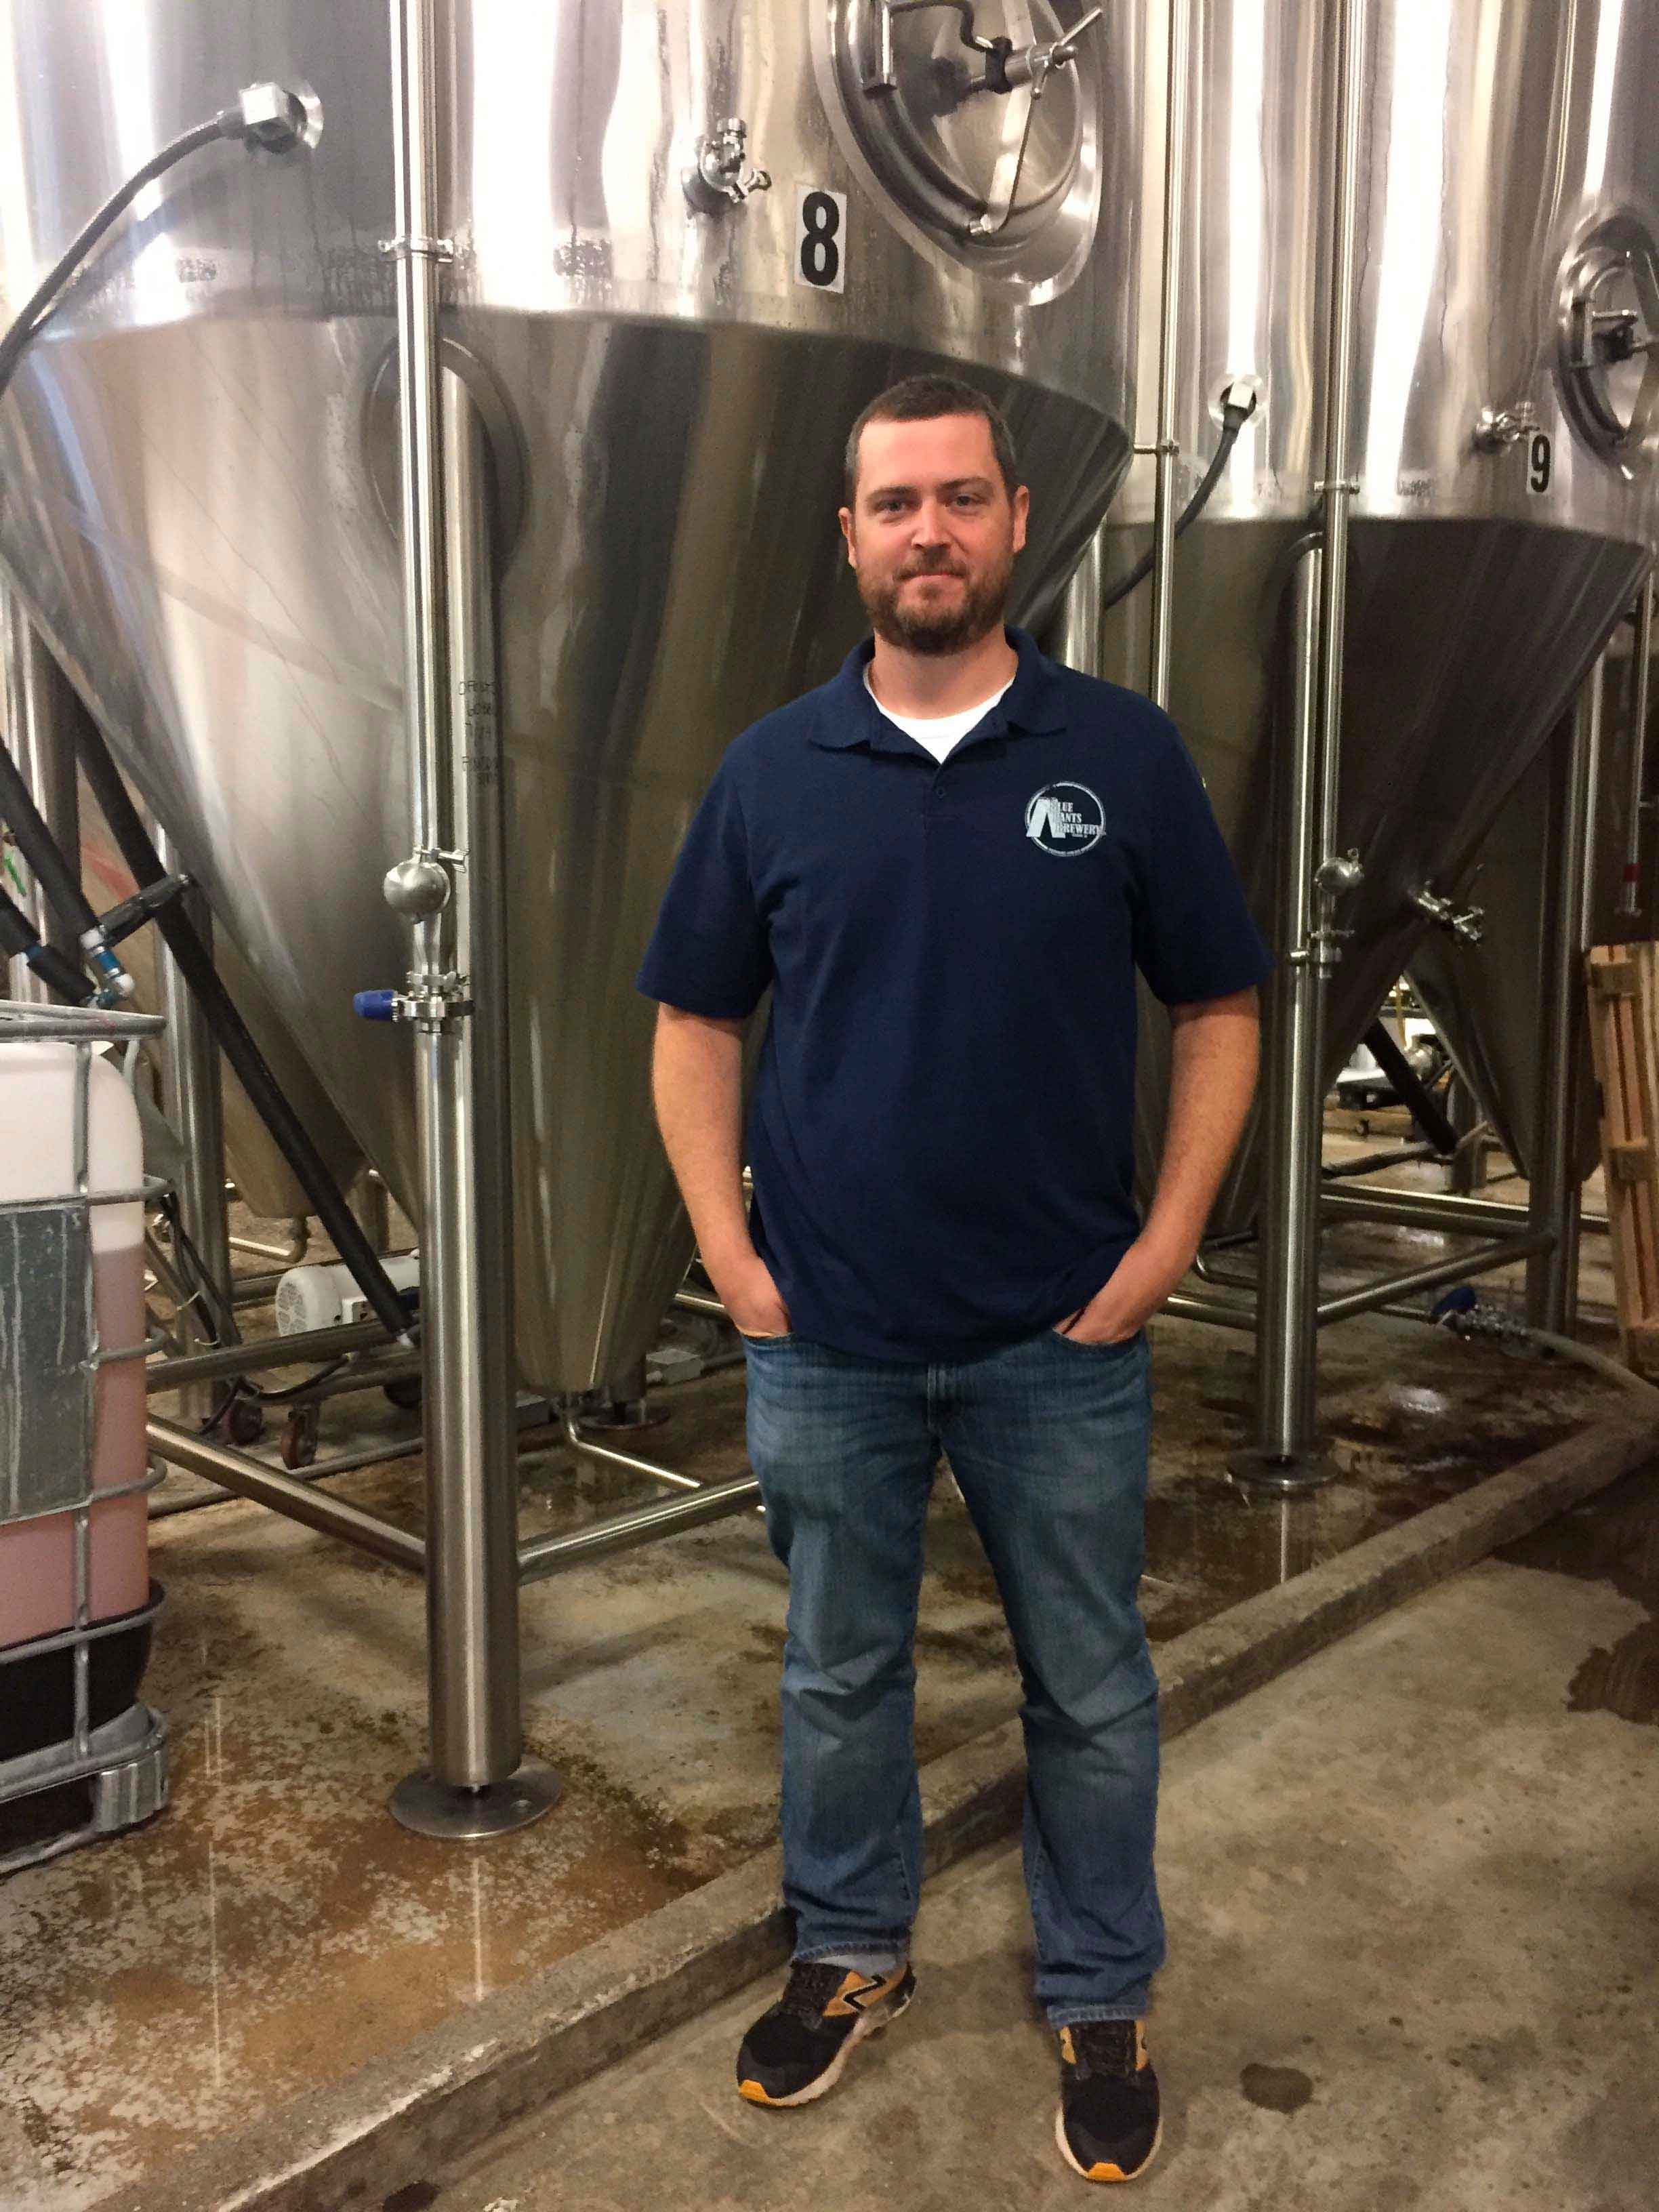 Blue Pants Brewery celebrates 7 years in Madison!